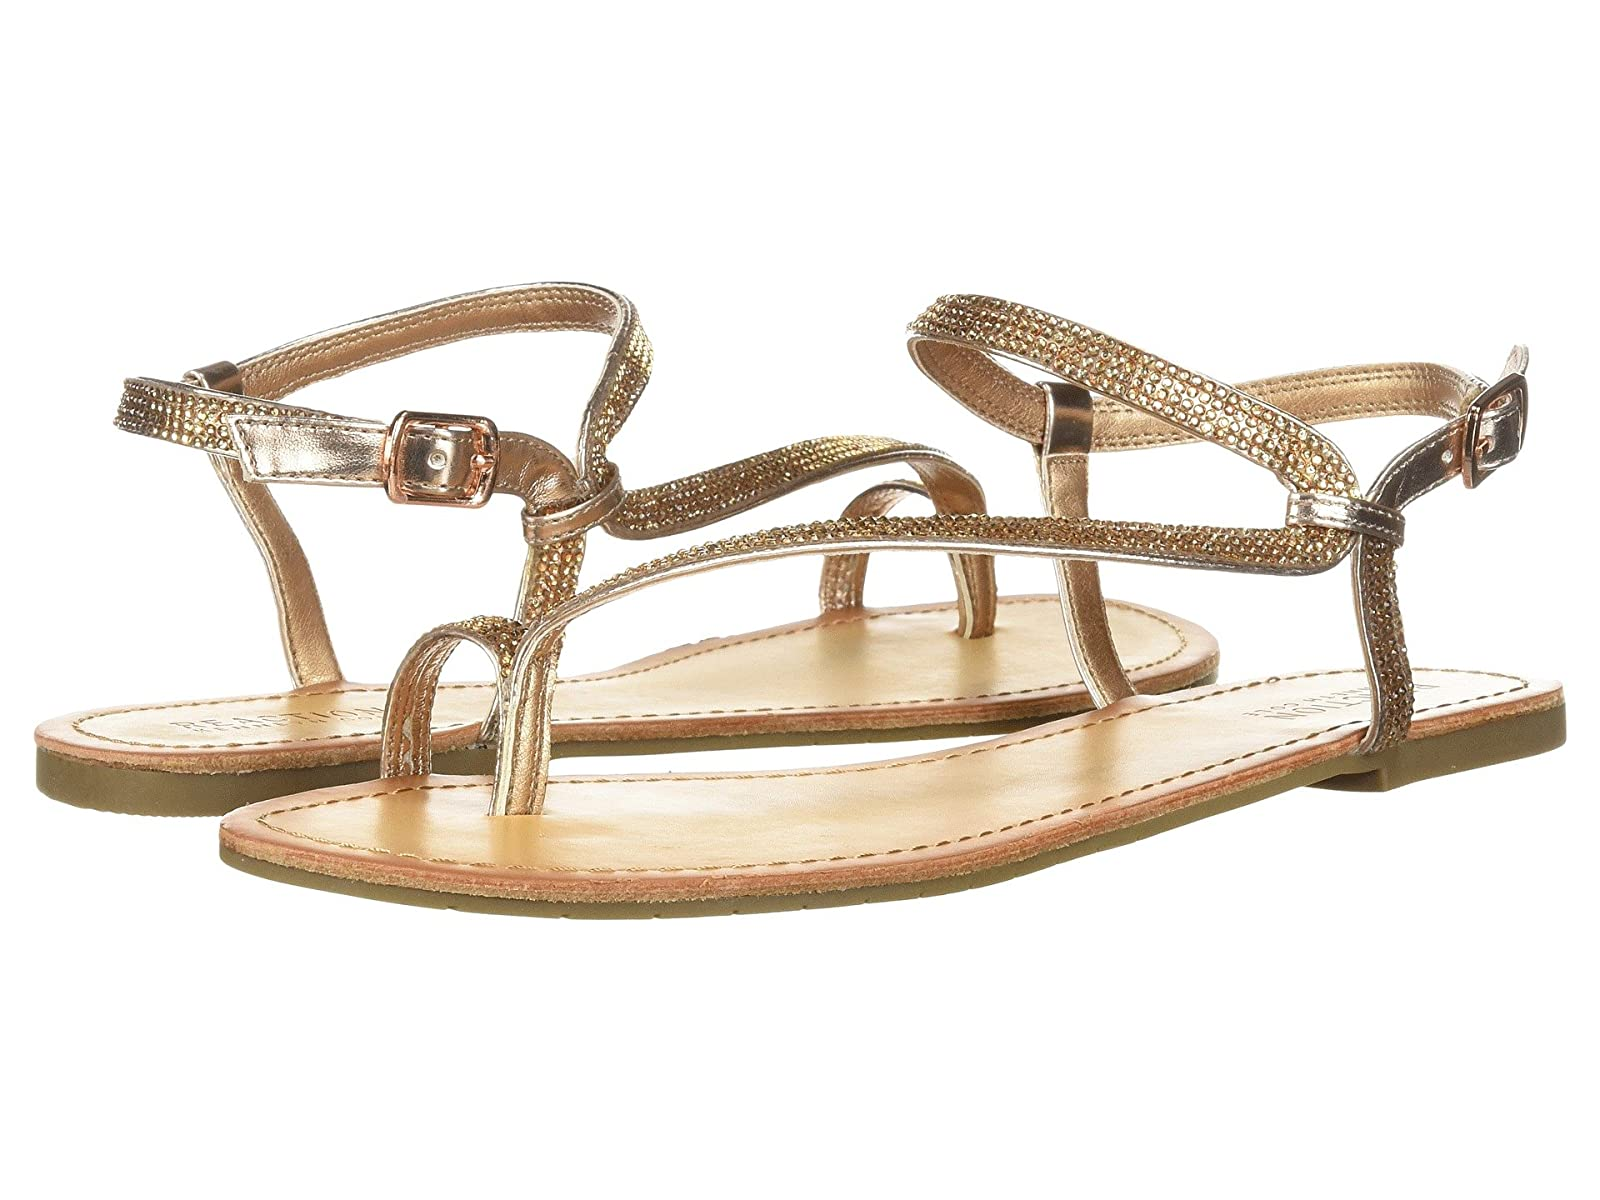 Kenneth Cole Reaction Just BraidAtmospheric grades have affordable shoes